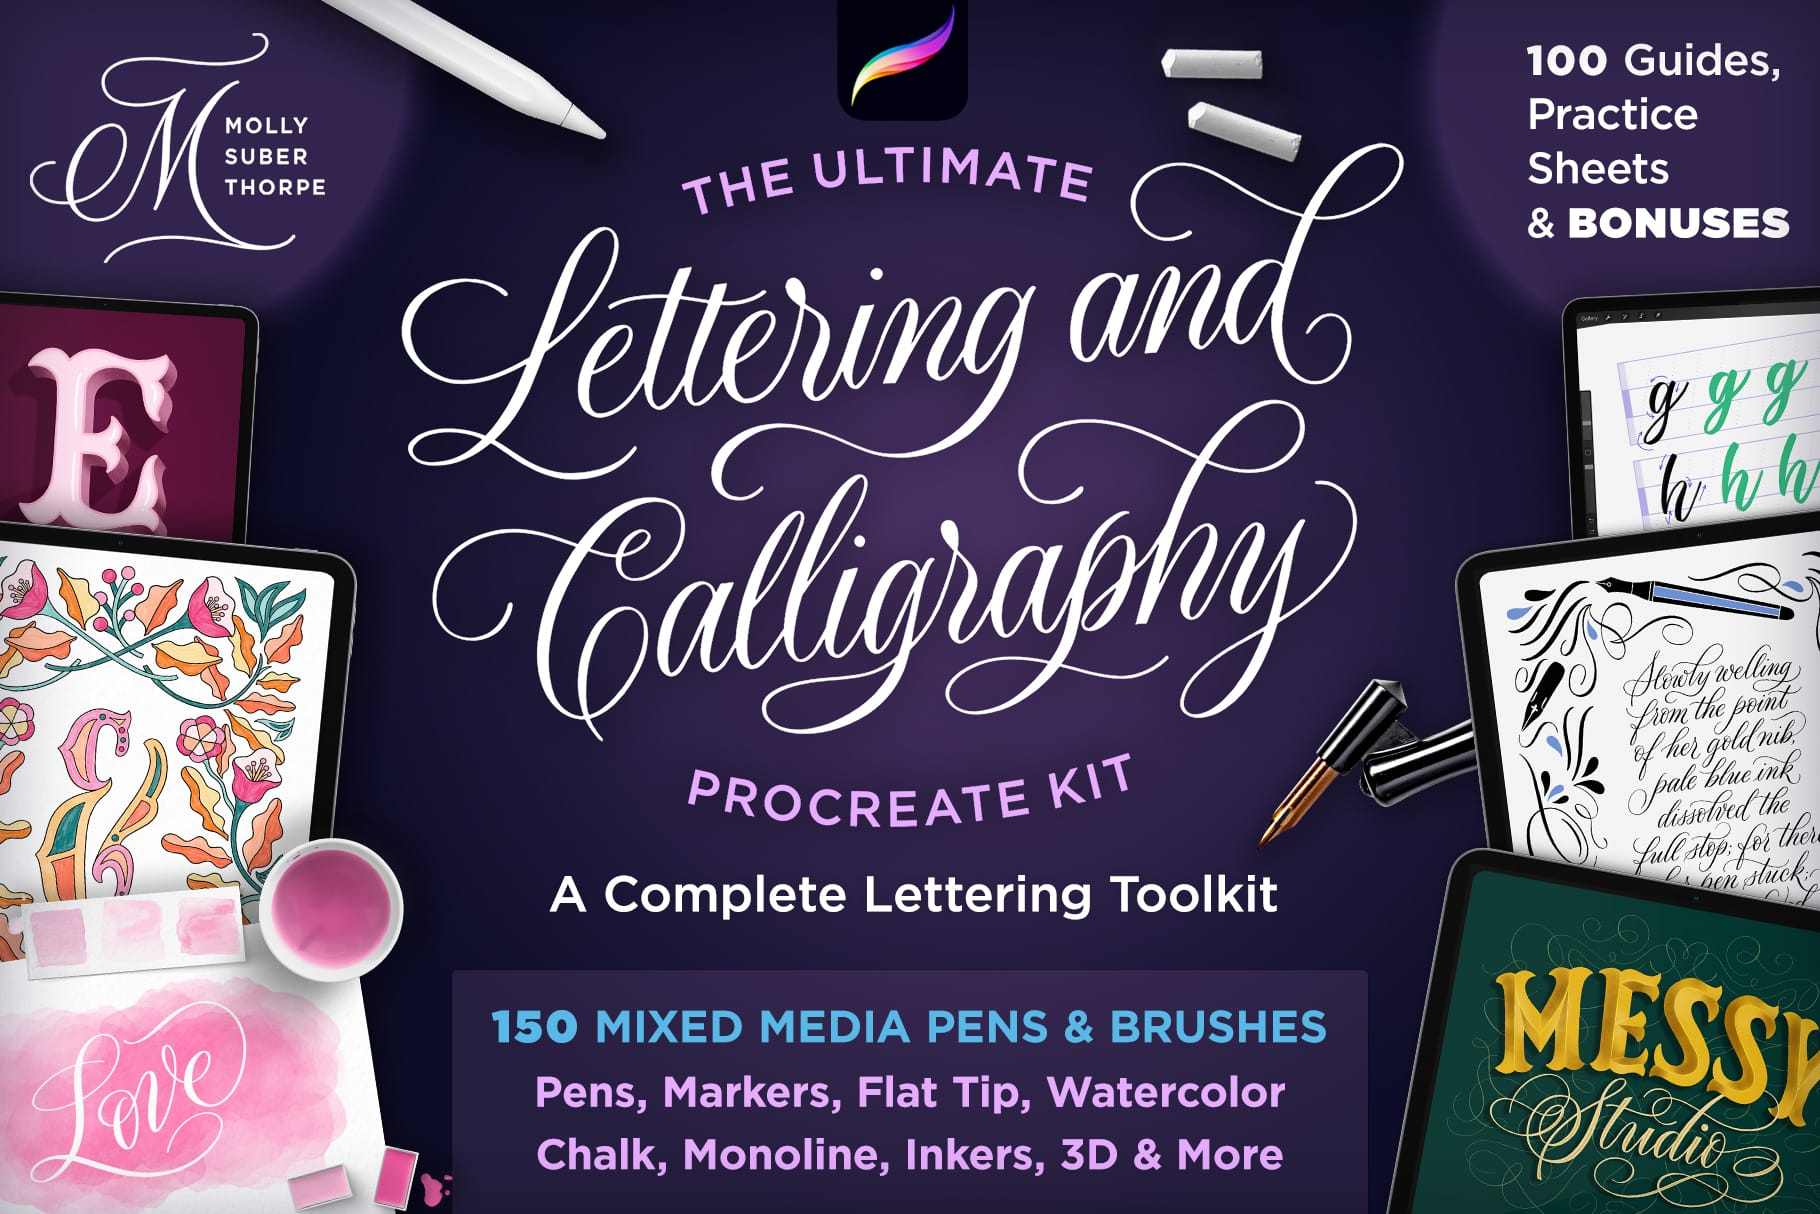 Lettering and Calligraphy Procreate Kit